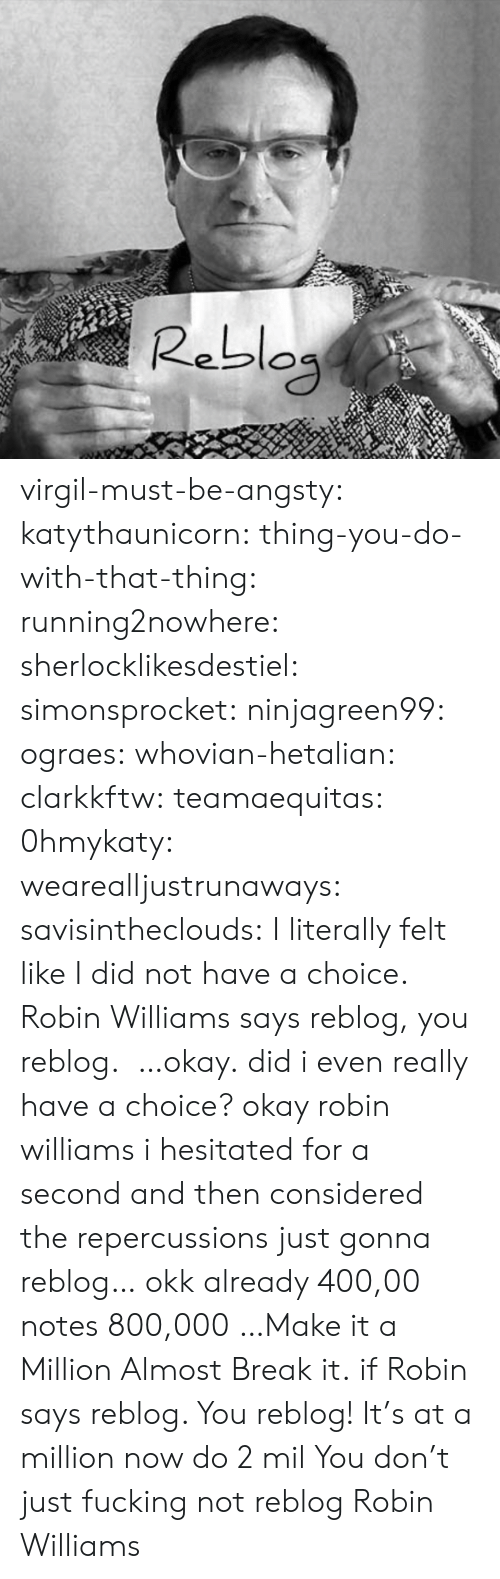 Virgil: Rebla virgil-must-be-angsty: katythaunicorn:   thing-you-do-with-that-thing:   running2nowhere:  sherlocklikesdestiel:  simonsprocket:  ninjagreen99:  ograes:  whovian-hetalian:  clarkkftw:  teamaequitas:  0hmykaty:  wearealljustrunaways:  savisintheclouds:  I literally felt like I did not have a choice.  Robin Williams says reblog, you reblog.   …okay.  did i even really have a choice?  okay robin williams i hesitated for a second and then considered the repercussions  just gonna reblog…  okk  already 400,00 notes  800,000 …Make it a Million  Almost  Break it.  if Robin says reblog. You reblog!   It's at a million now do 2 mil   You don't just fucking not reblog Robin Williams